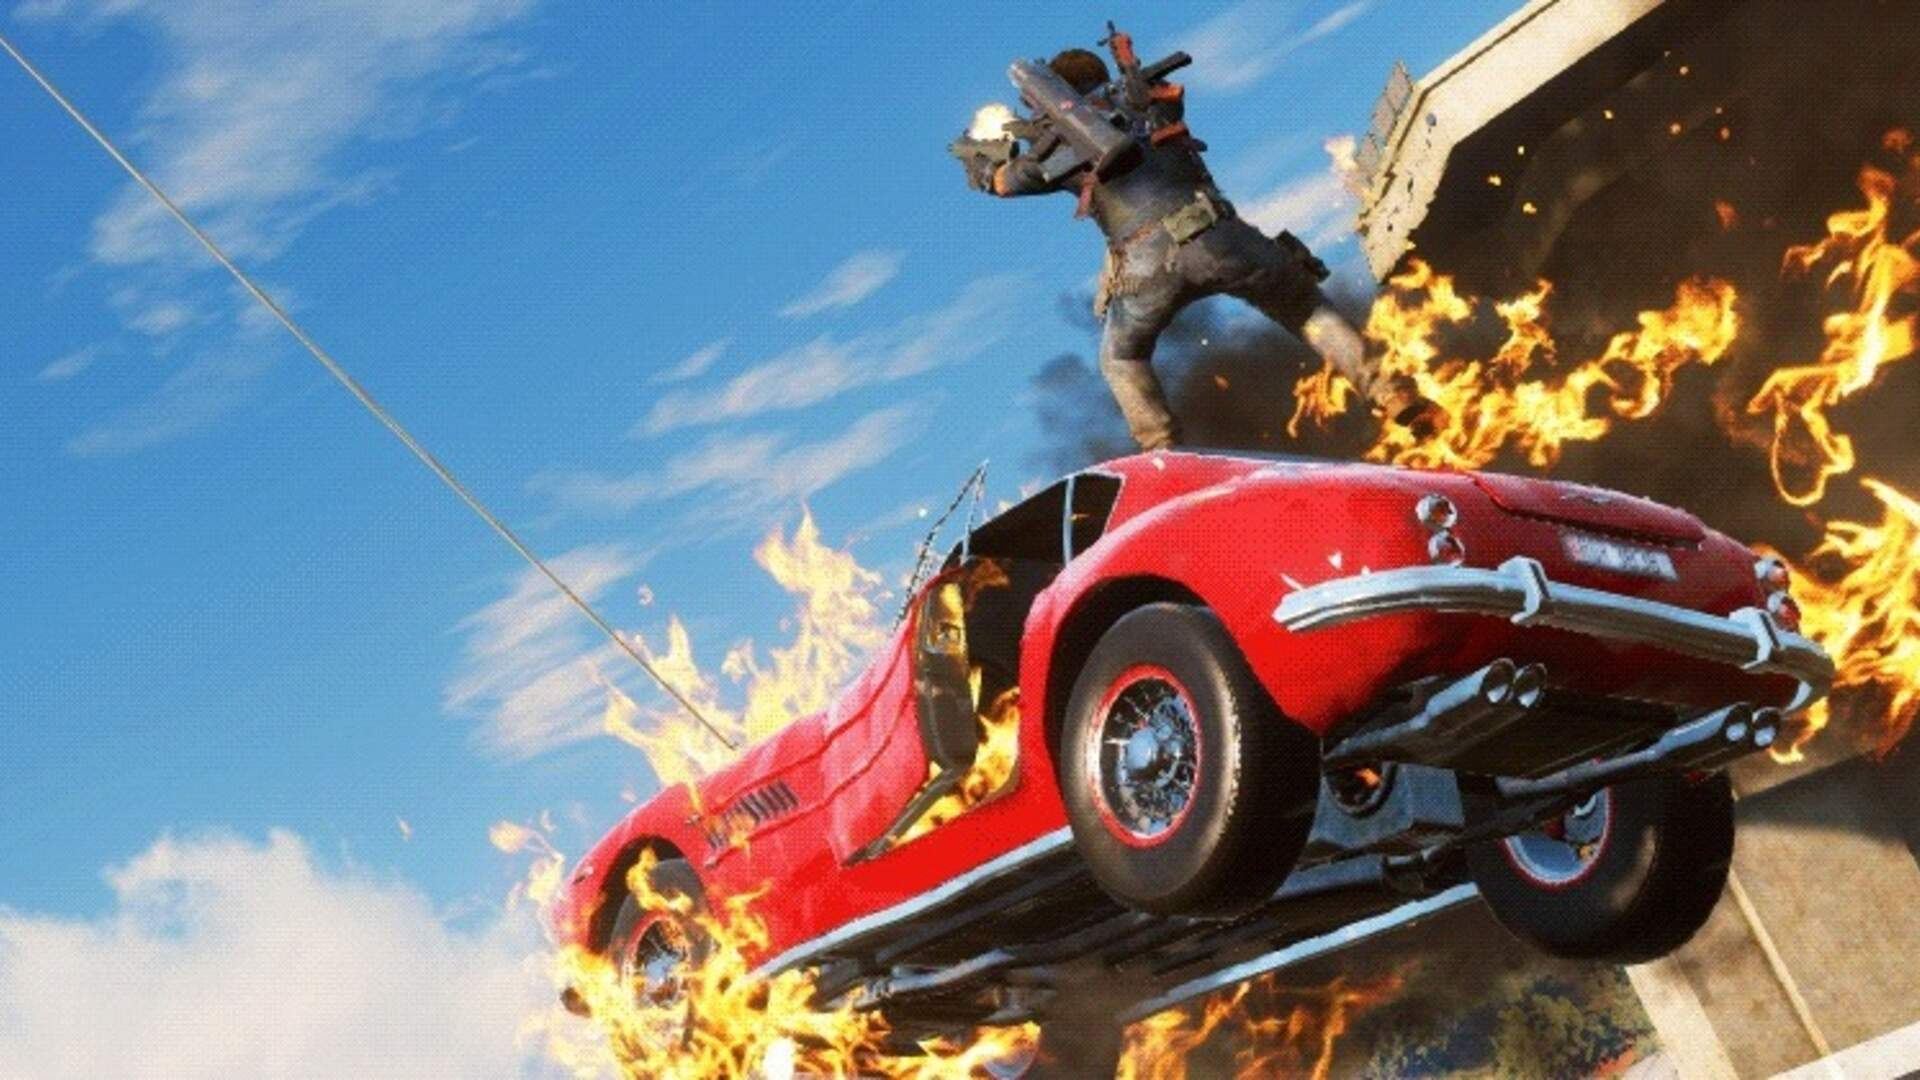 Just Cause 3 Story Mission Guide - An Act of Piracy, Take the Imperator Bavarium Tank